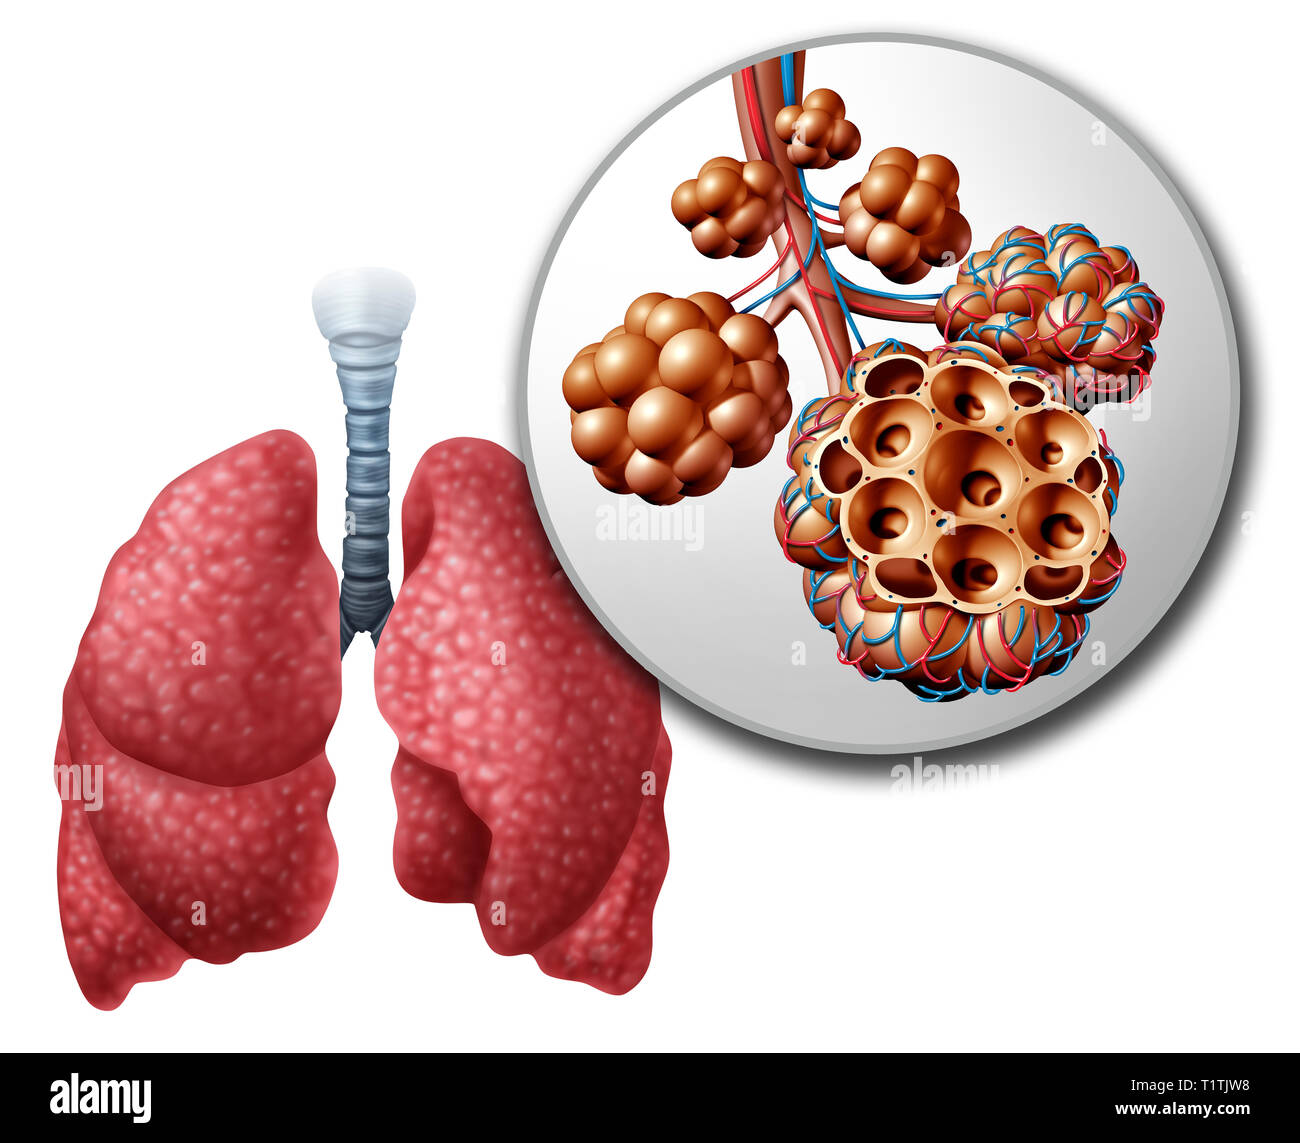 Lung pulmonary alveoli or alveolus anatomy diagram as a medical concept of a close up of the human anatomy and respiratory or respiration medicine. - Stock Image